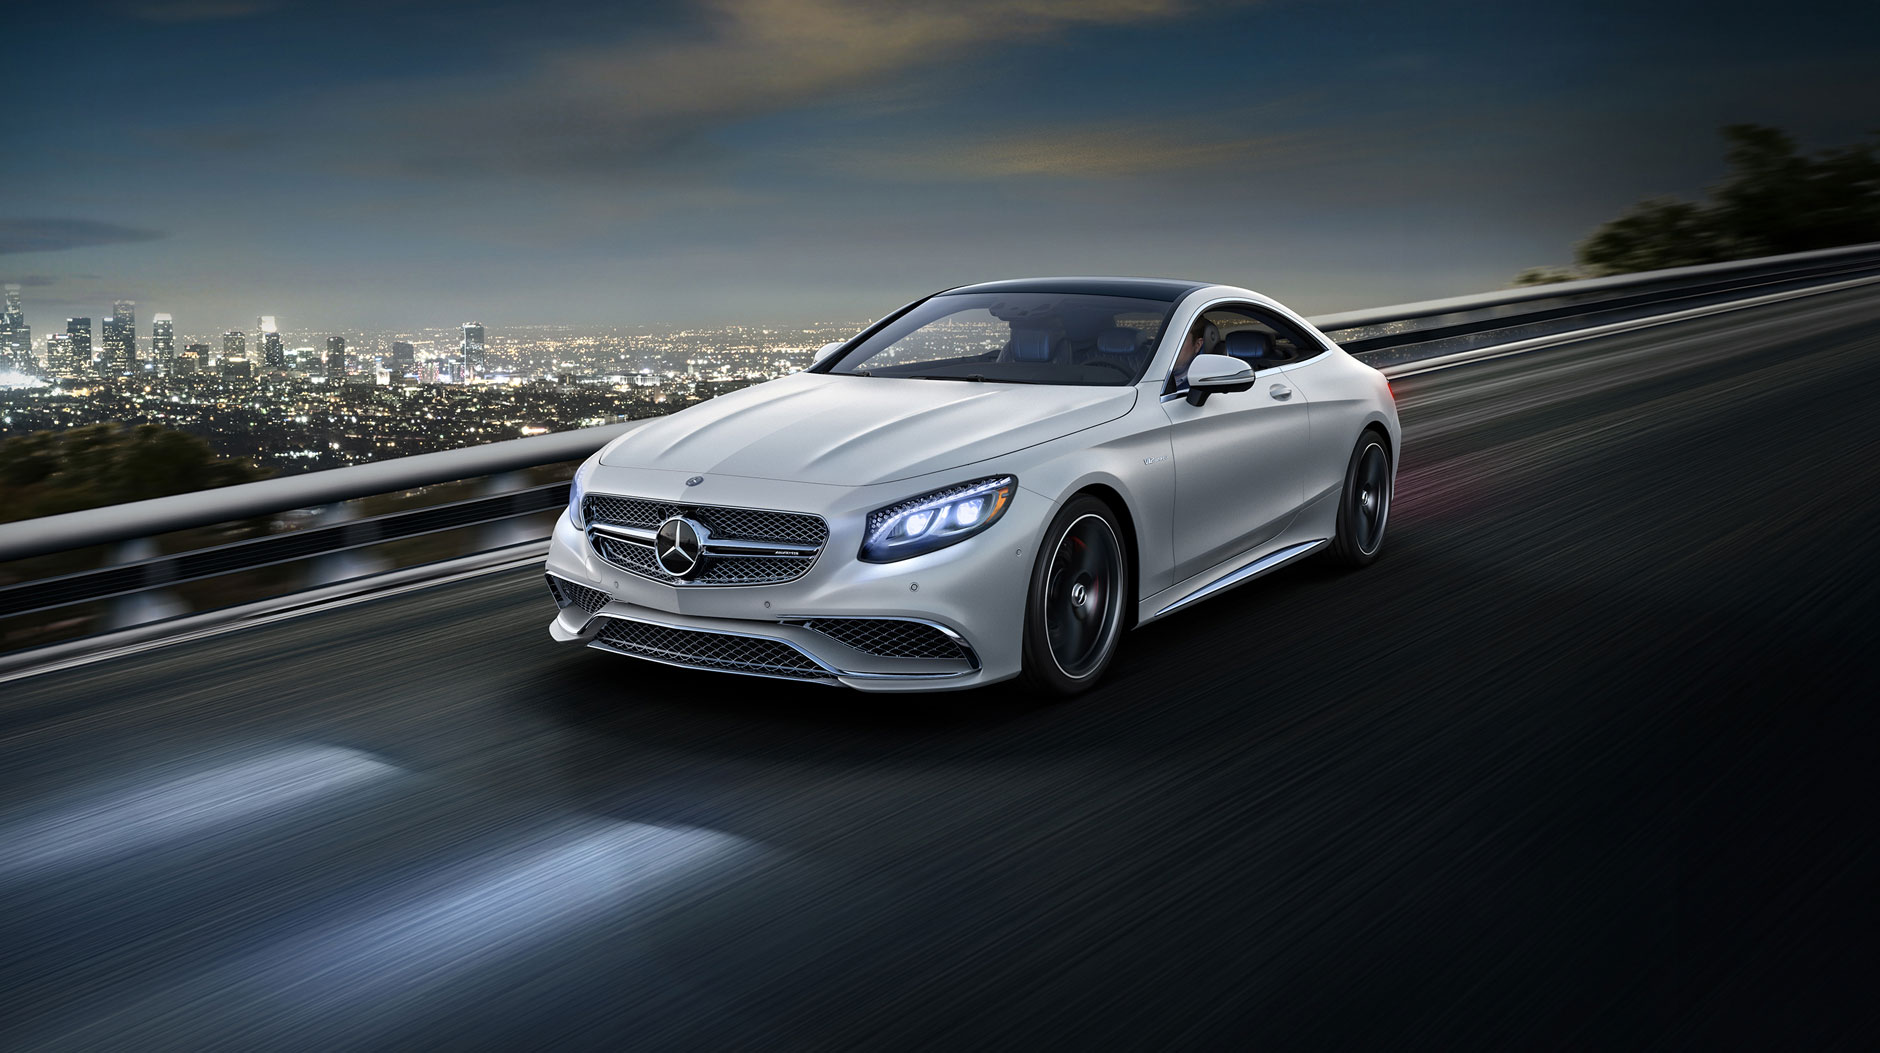 leasing coupe henderson jones benz white us fletcher lease why mobile with min mercedes imports